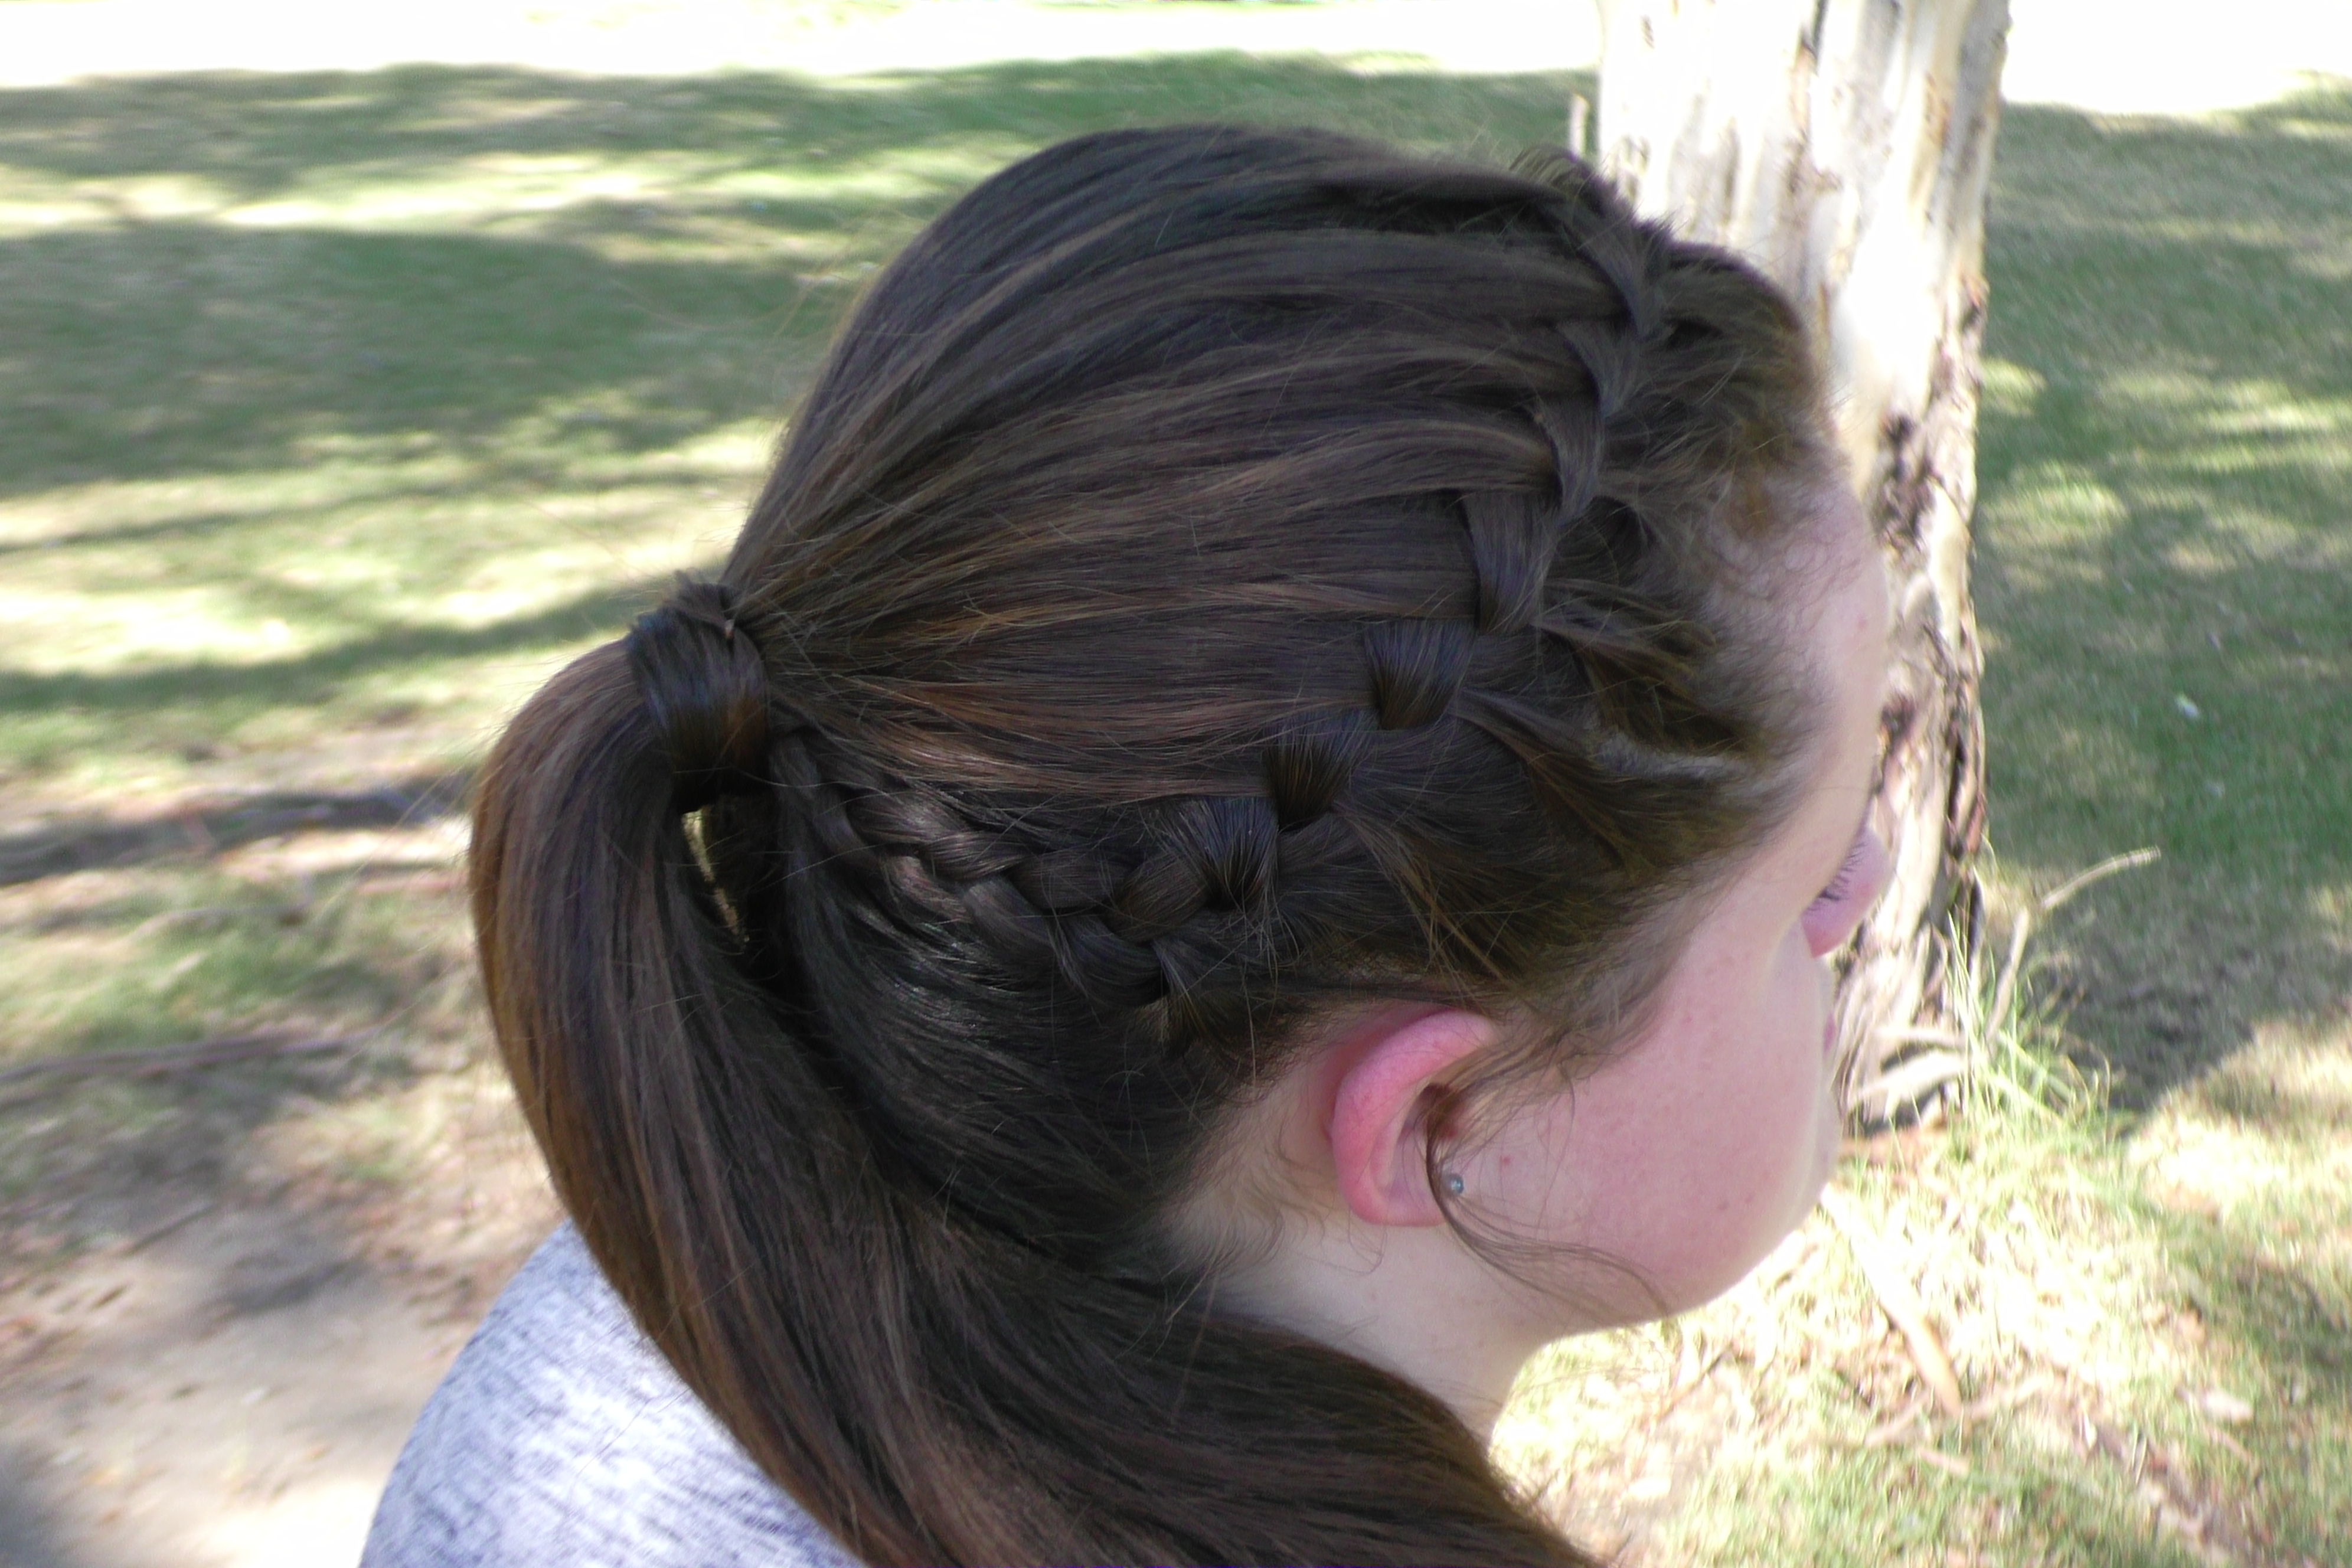 Wonderful The Thing Thatu0027s A Bit Different In This Hairstyle To A Normal Waterfall  Braid In This Tutorial Is That The Actually Drop The Top Strand Instead Of  The ...